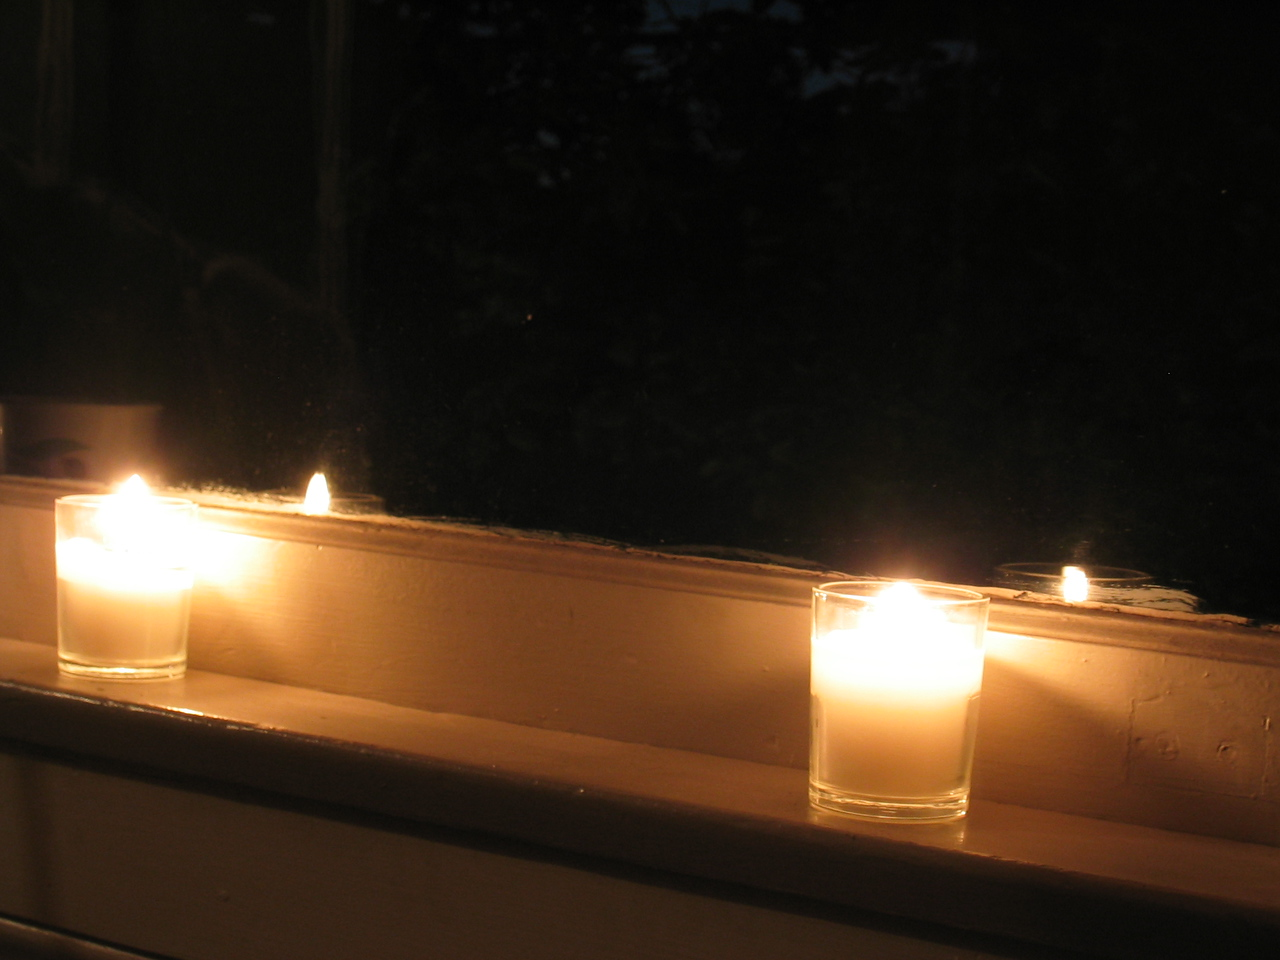 Living room candles